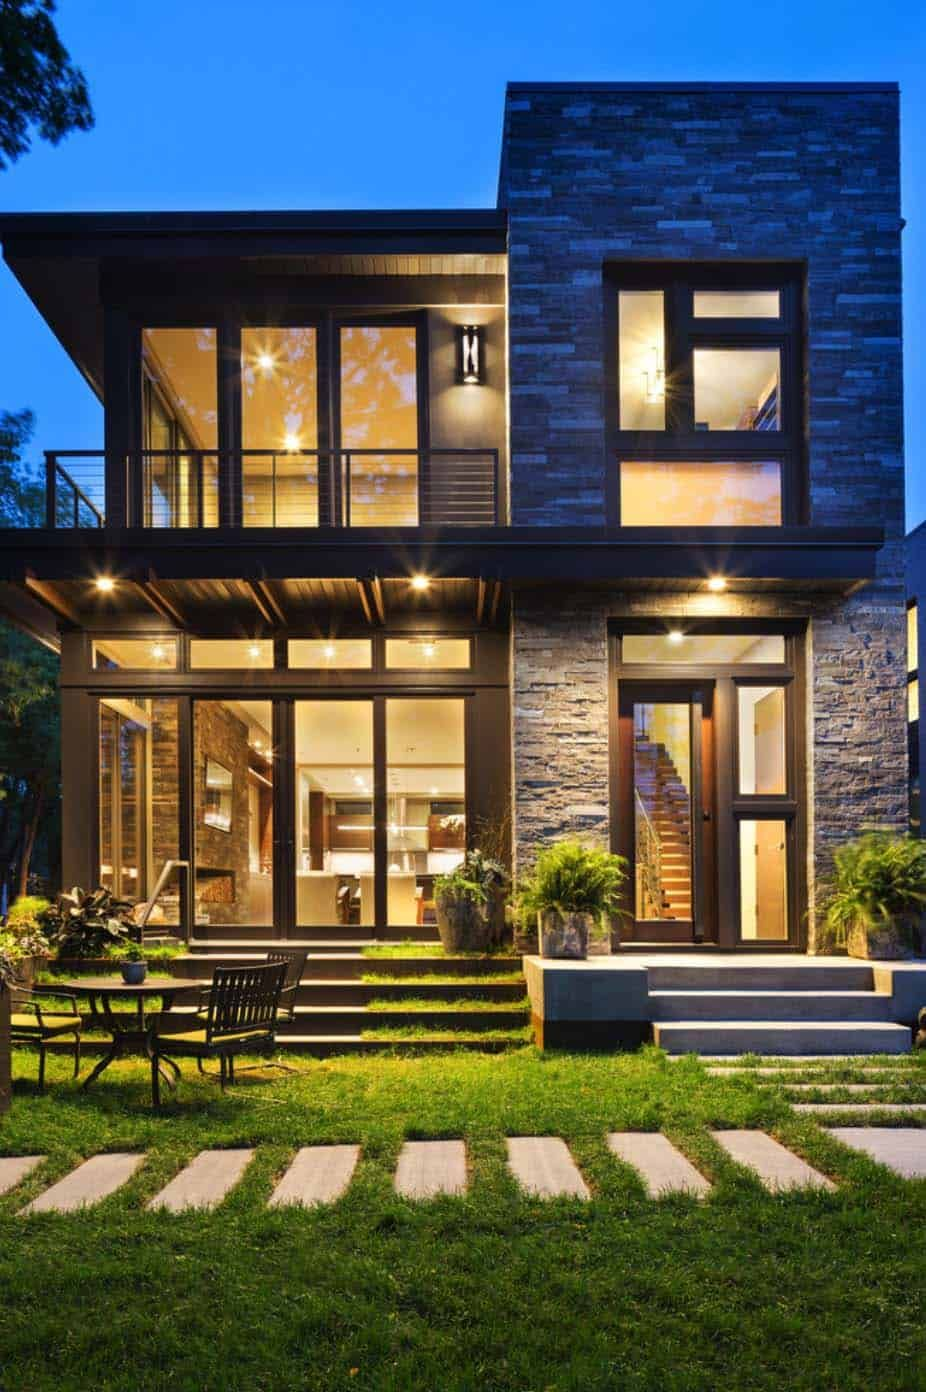 Modern Organic Home By John Kraemer Sons In Minneapolis Usa: Idyllic Contemporary Residence With Privileged Views Of Lake Calhoun In 2020 (With Images